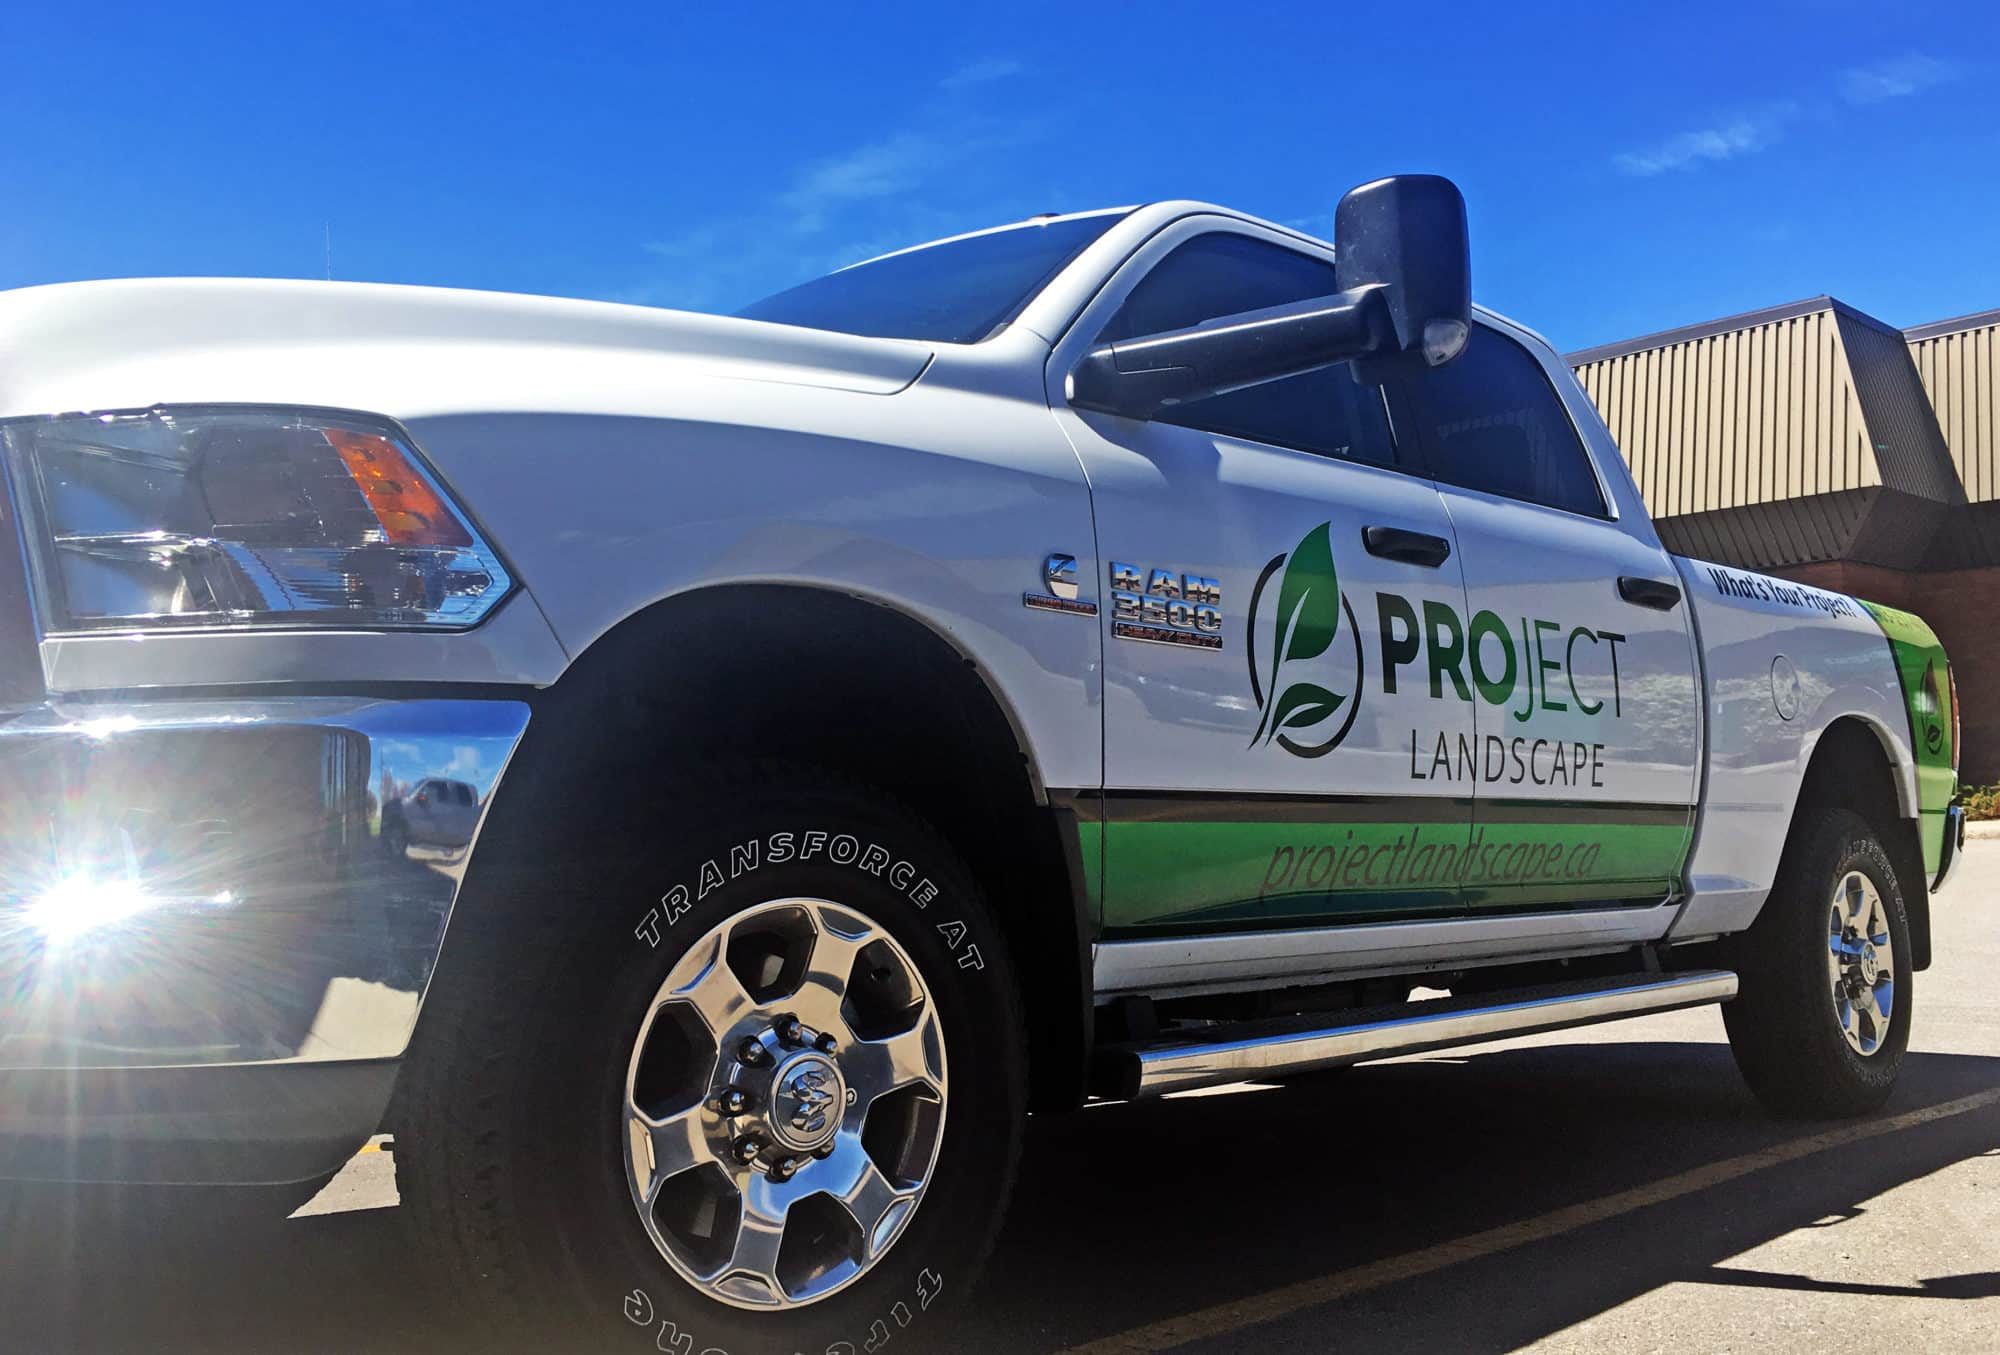 A partial vinyl vehicle wrap, company logo decals, and phone number decals on a company work Dodge pickup truck.